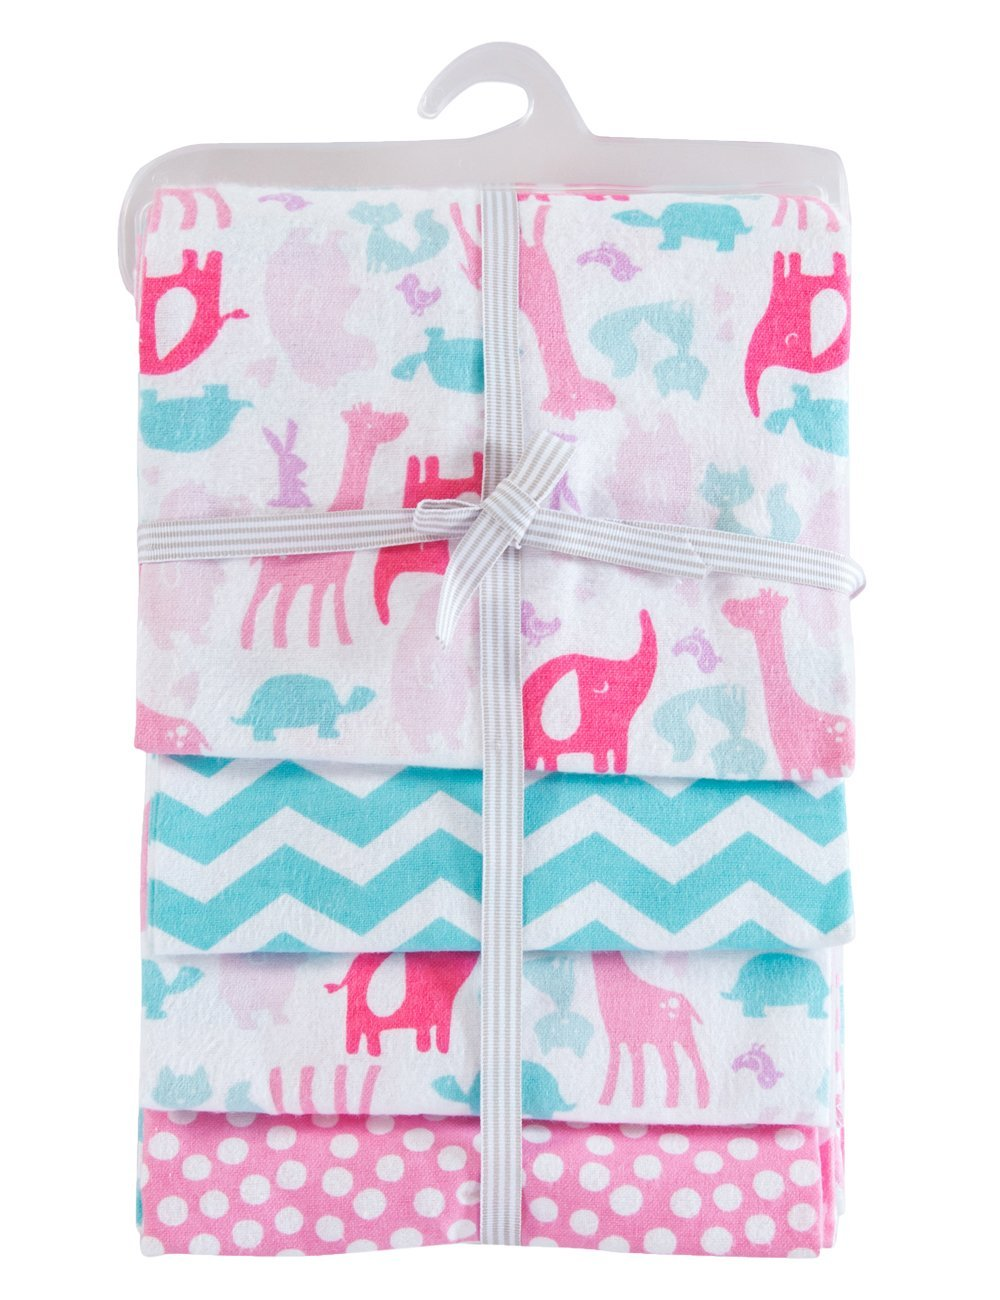 PHF 100/% Cotton Flannel Receiving Blankets Warm Unisex 30x40 Pink 4 Count